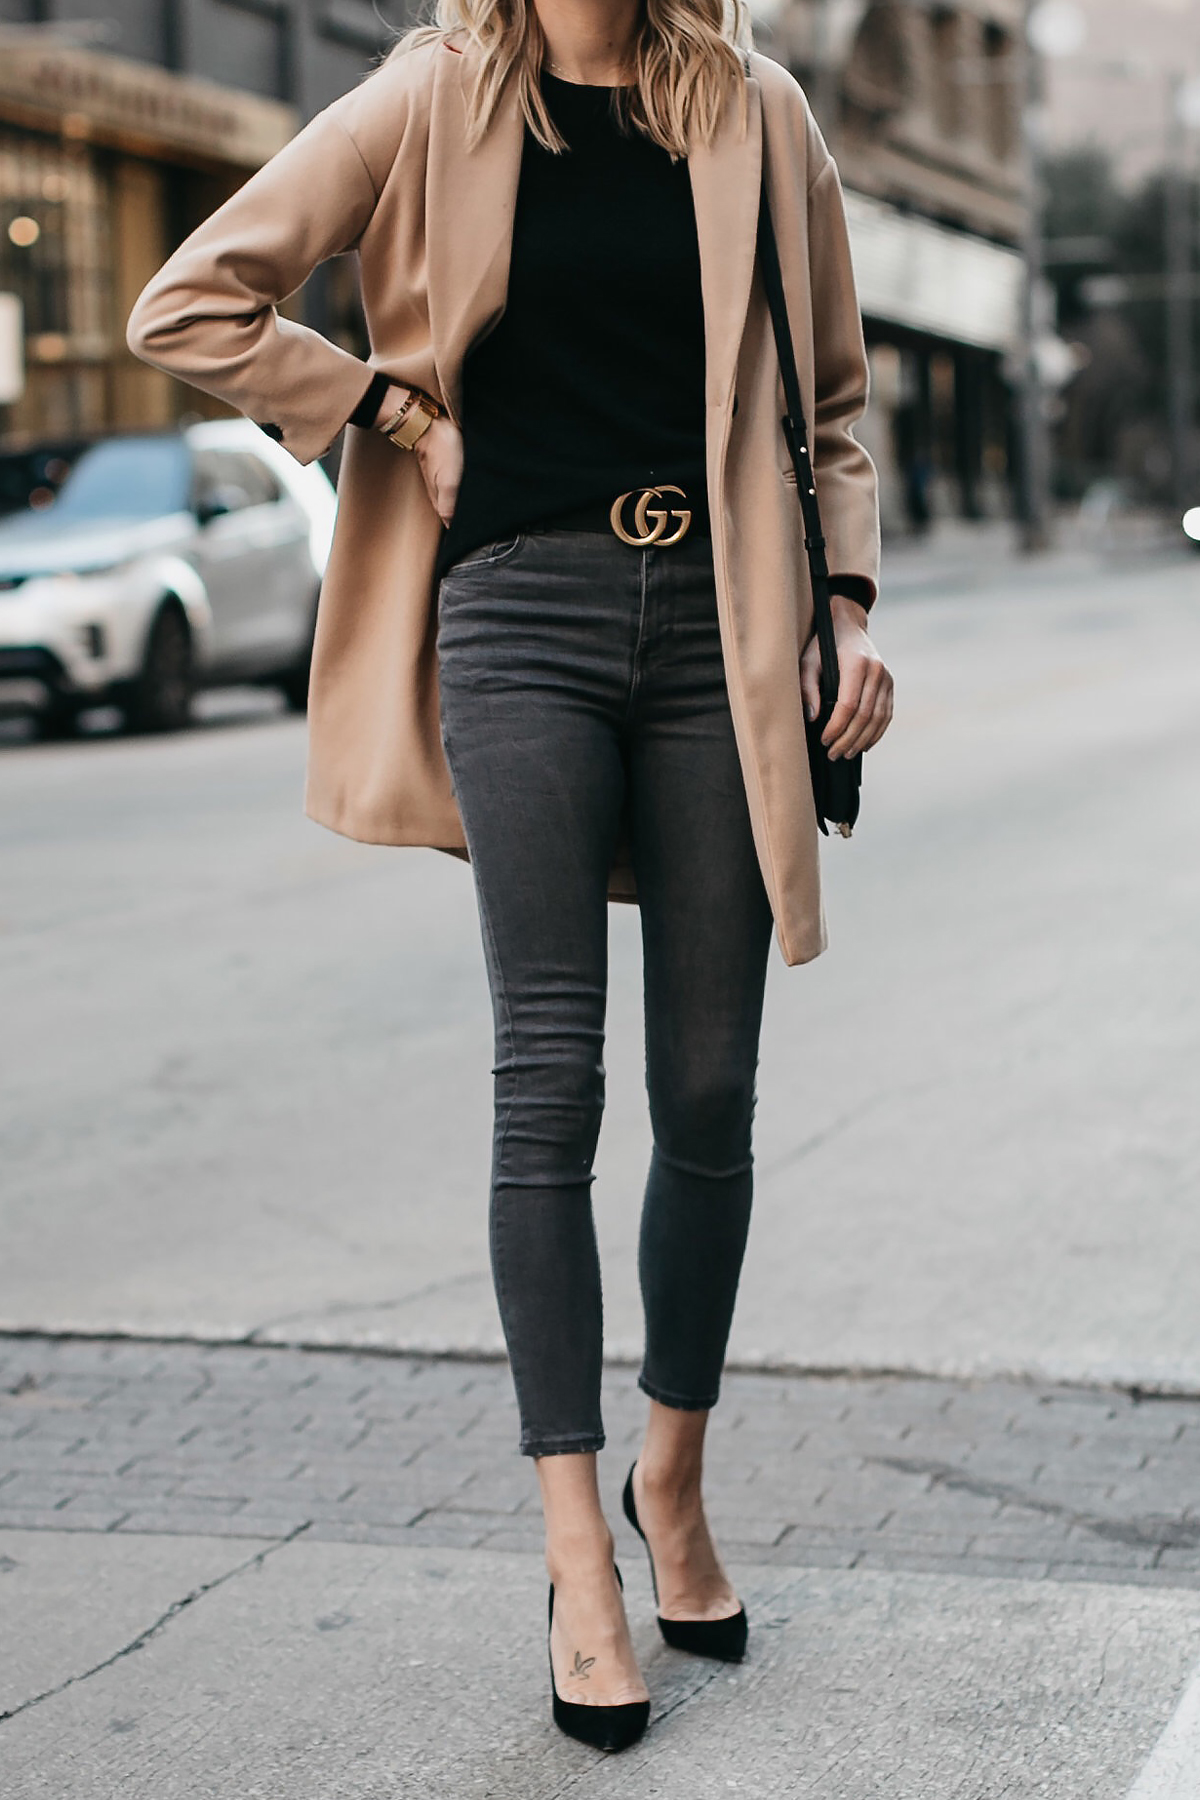 Topshop Camel Coat Black Sweater Grey Skinny Jeans Gucci Marmont Belt Christian Louboutin Black Pumps Fashion Jackson Dallas Blogger Fashion Blogger Street Style